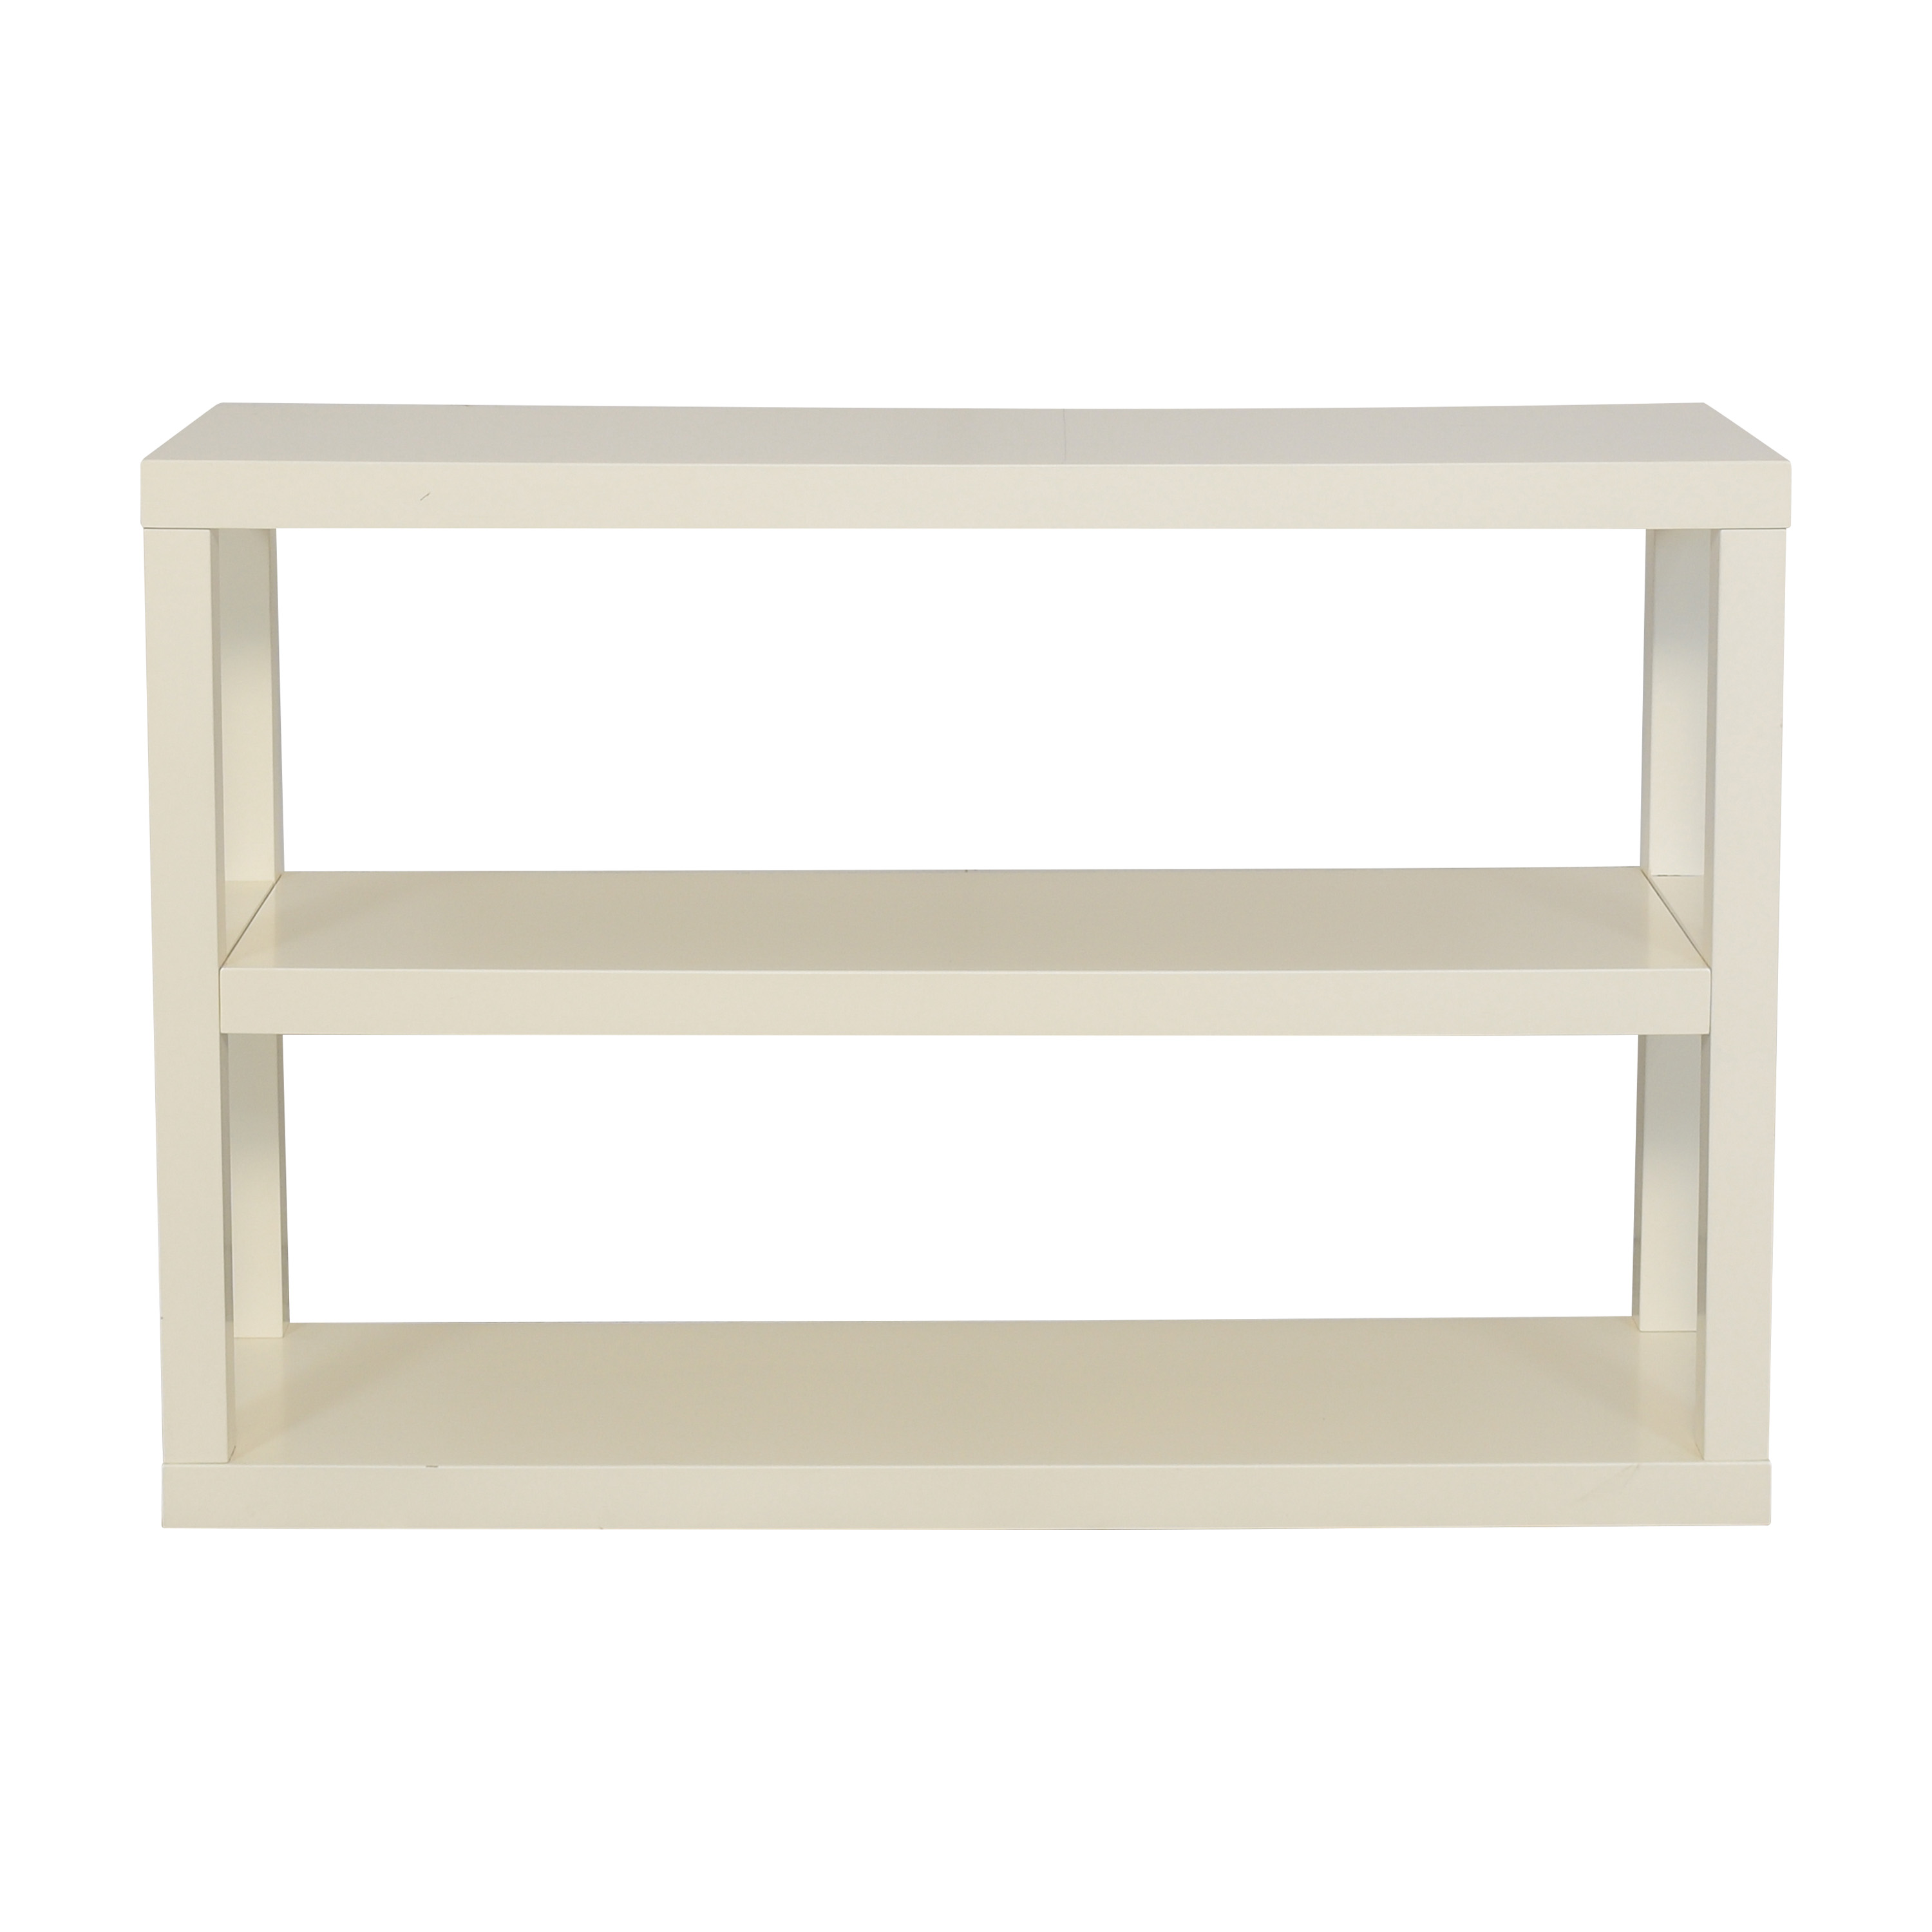 West Elm West Elm Parsons Low Bookshelf on sale